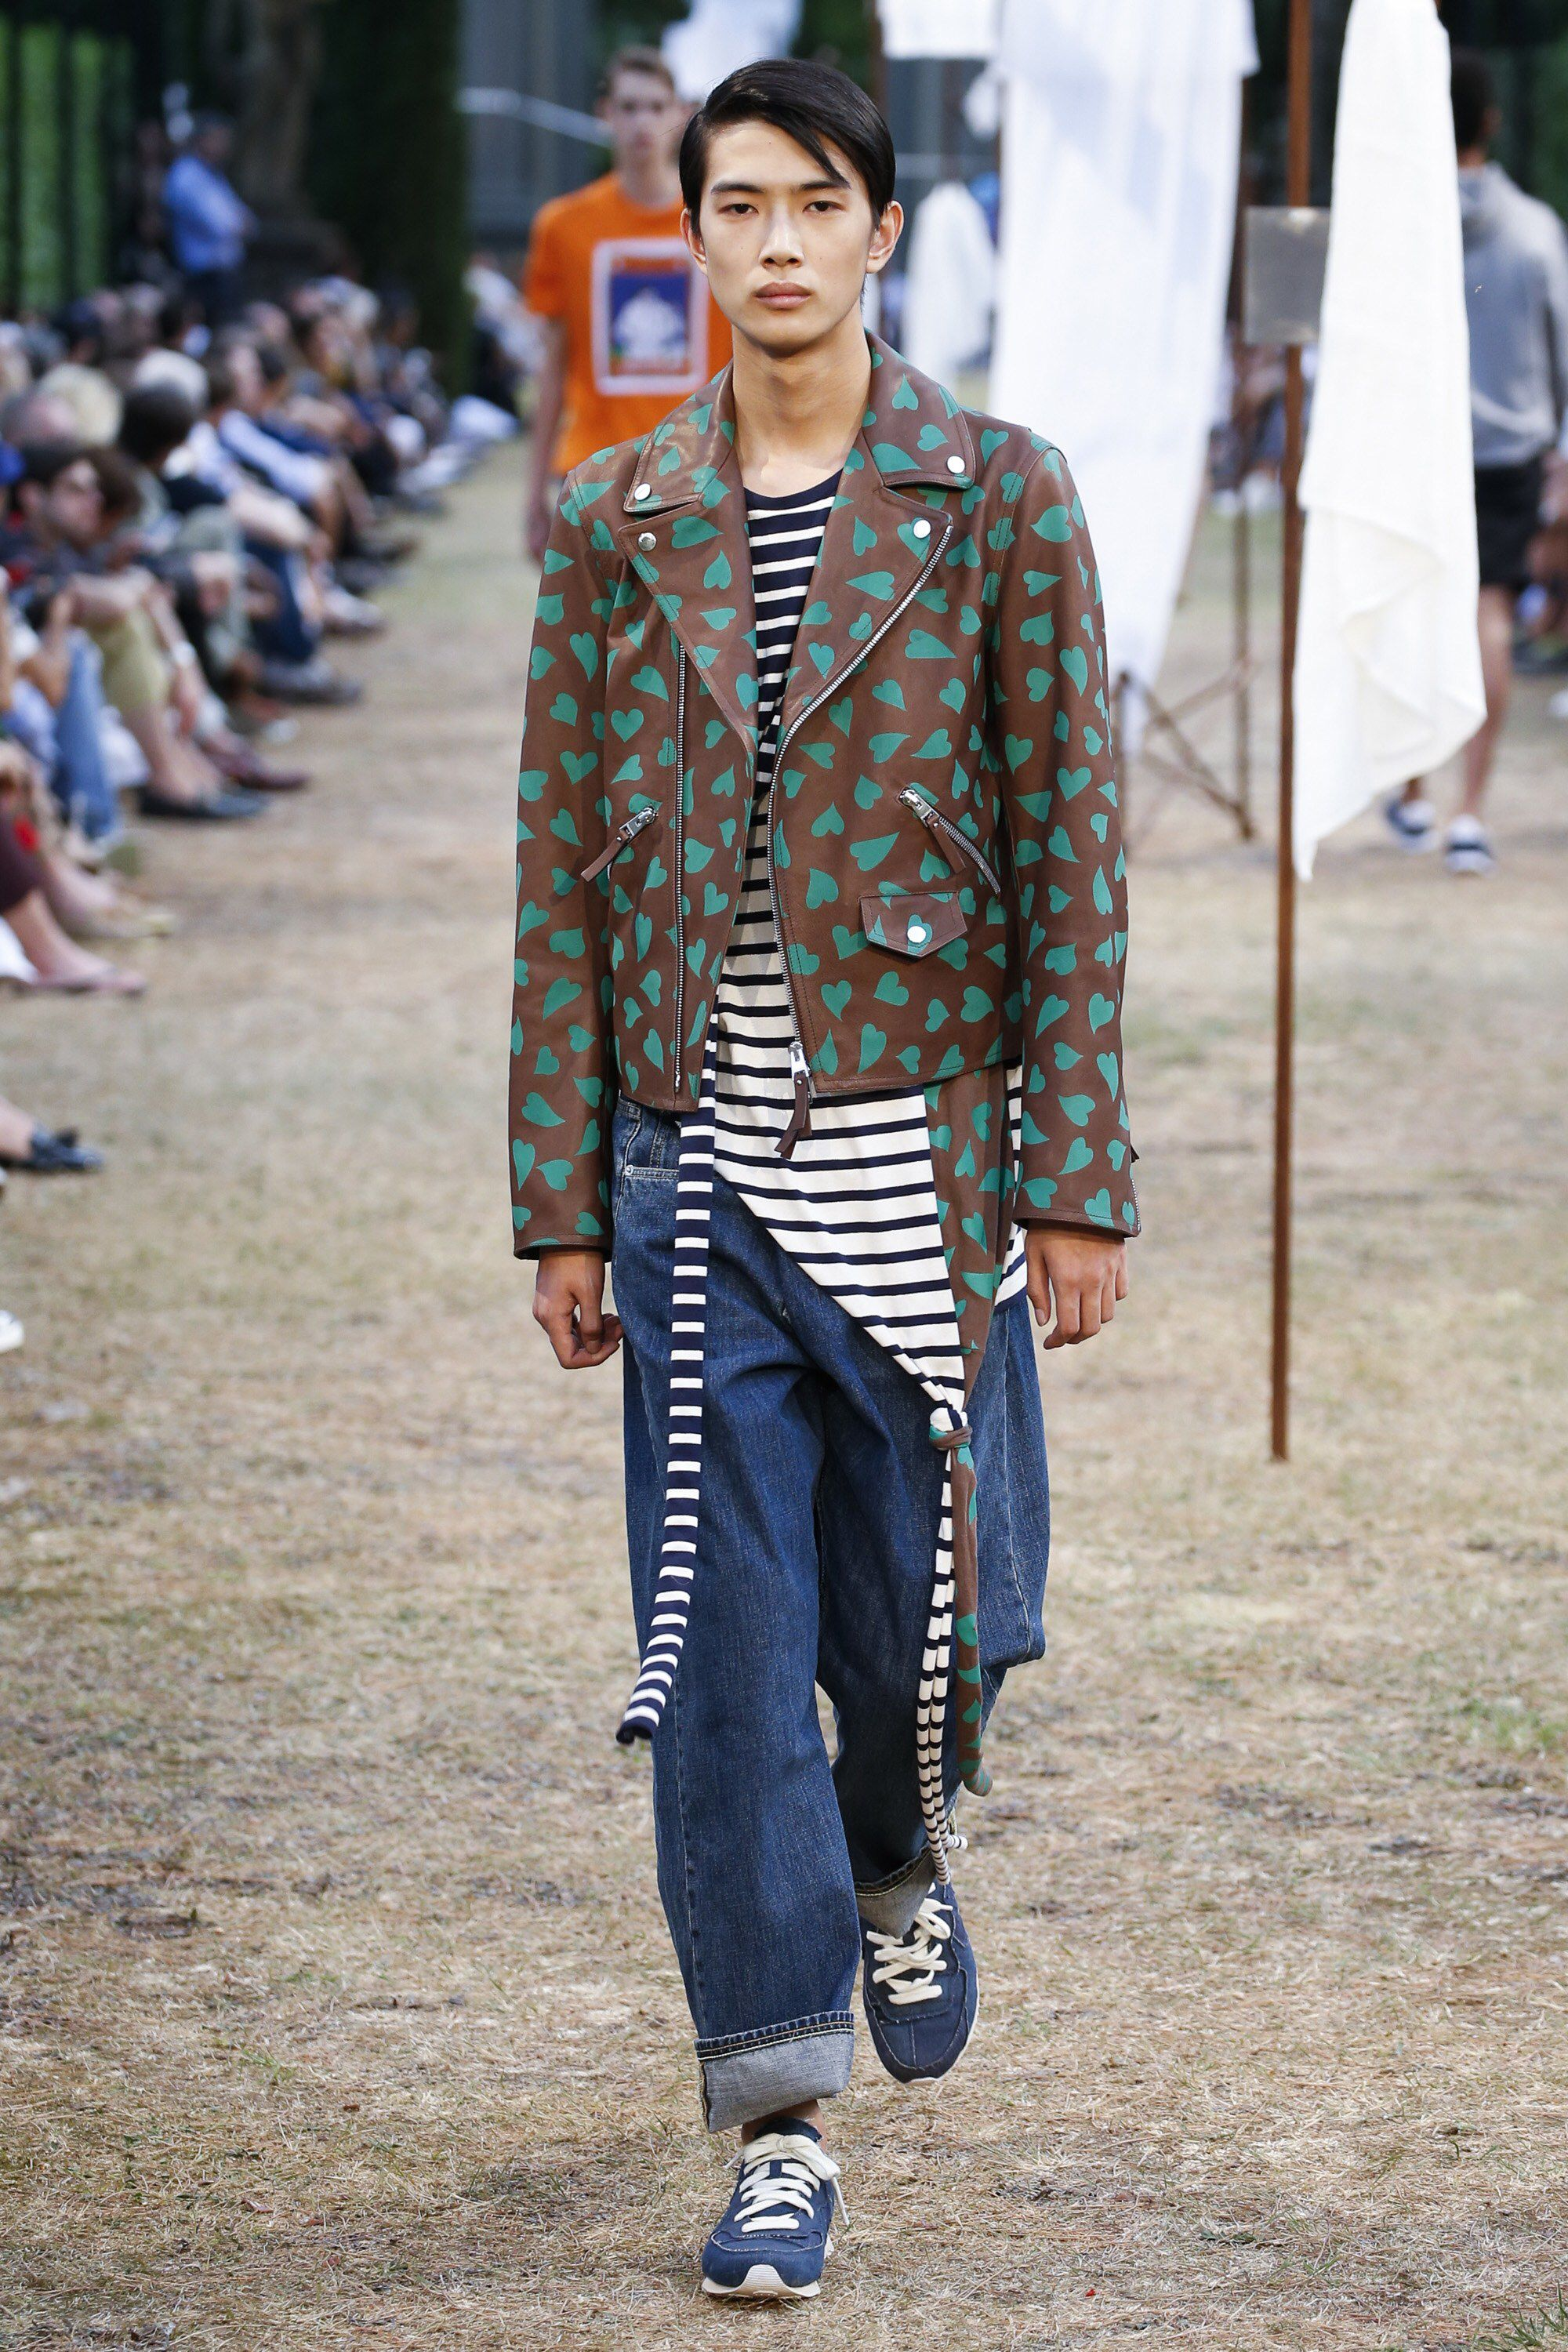 J.W.Anderson Spring 2018 Menswear Fashion Show Collection. Zippertravel. #DrStyle